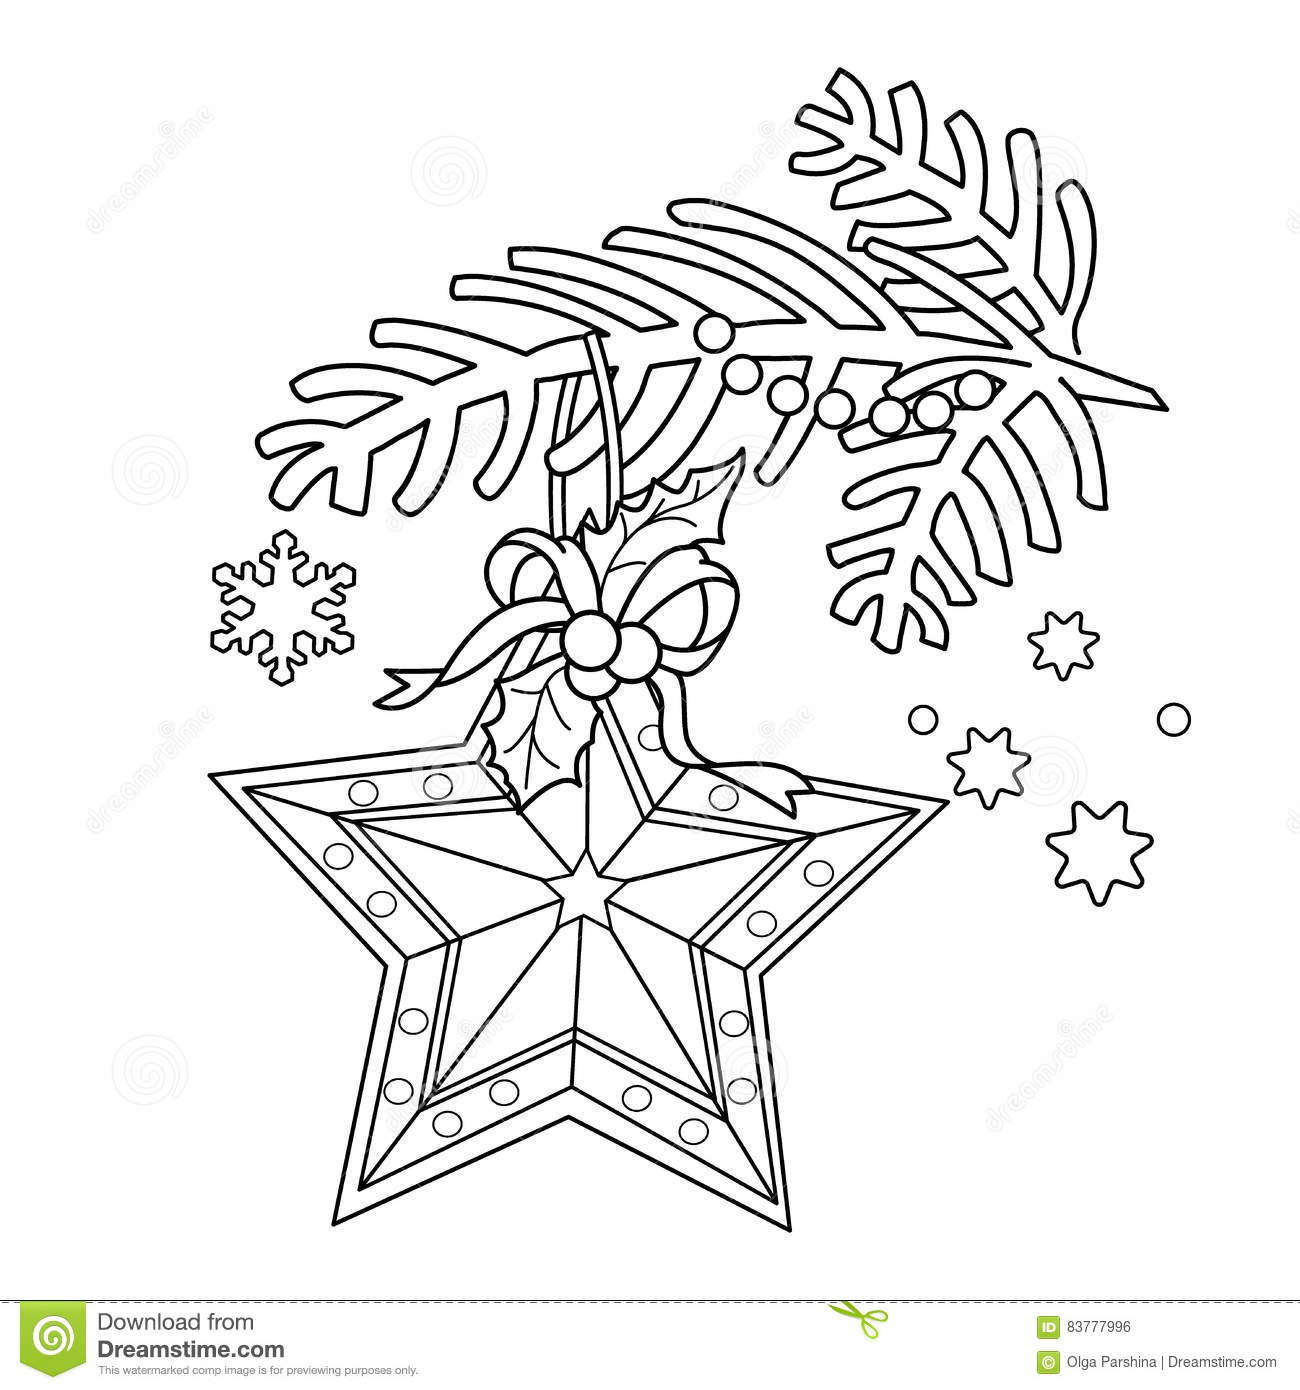 coloring page outline christmas decoration star christmas tree branch new year coloring book kids